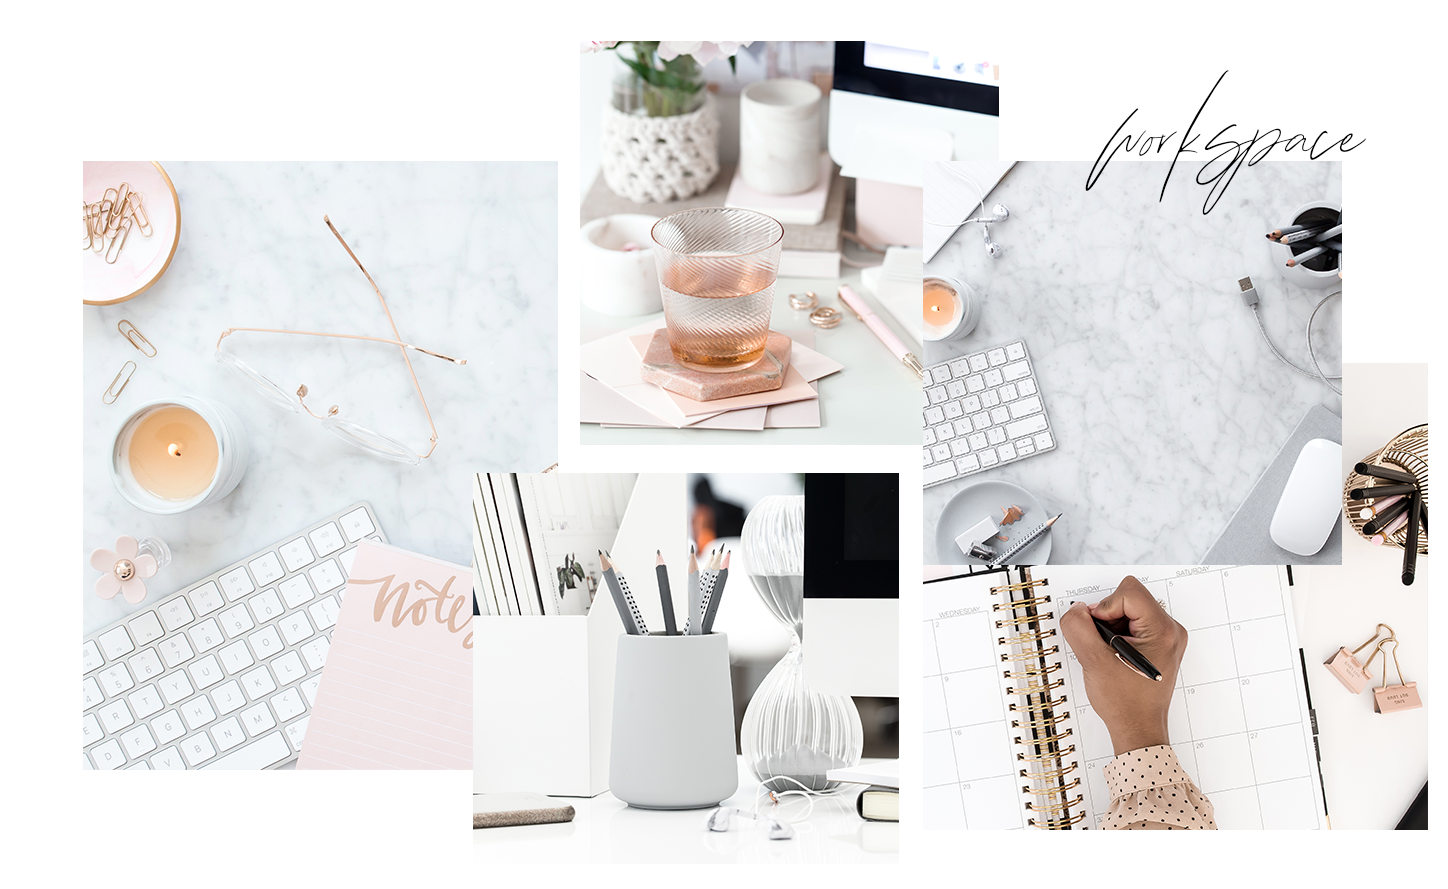 Workspace Stock Photos - Your membership includes access to hundreds of flatlay images perfect for boss ladies. They feature tech and pretty props in a variety of layouts and color palettes, with lots of negative space for text.